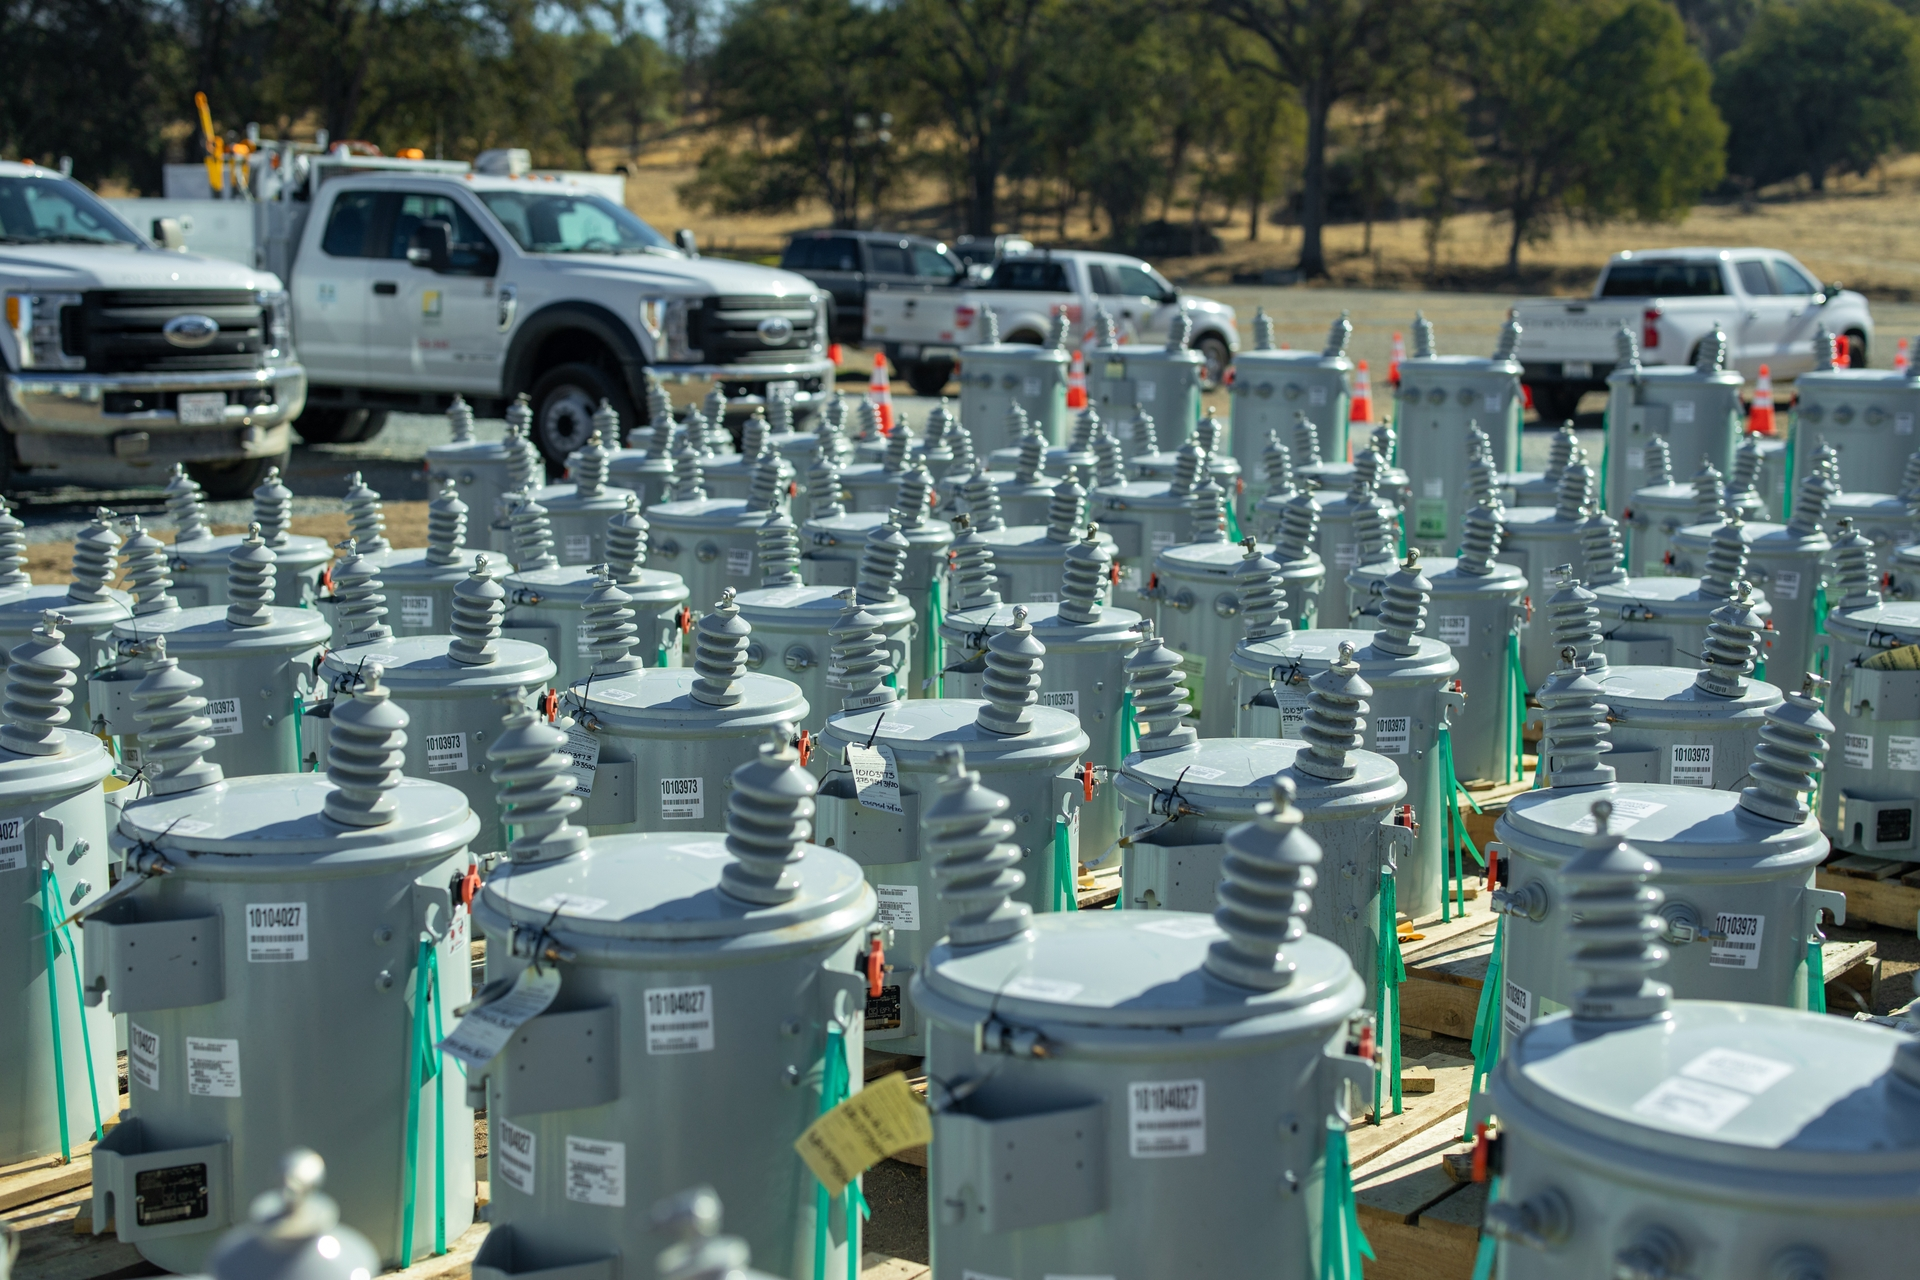 Transformers, which transfer electrical energy across circuits, await use at SCE's 27-acre Auberry Nursery laydown yard.